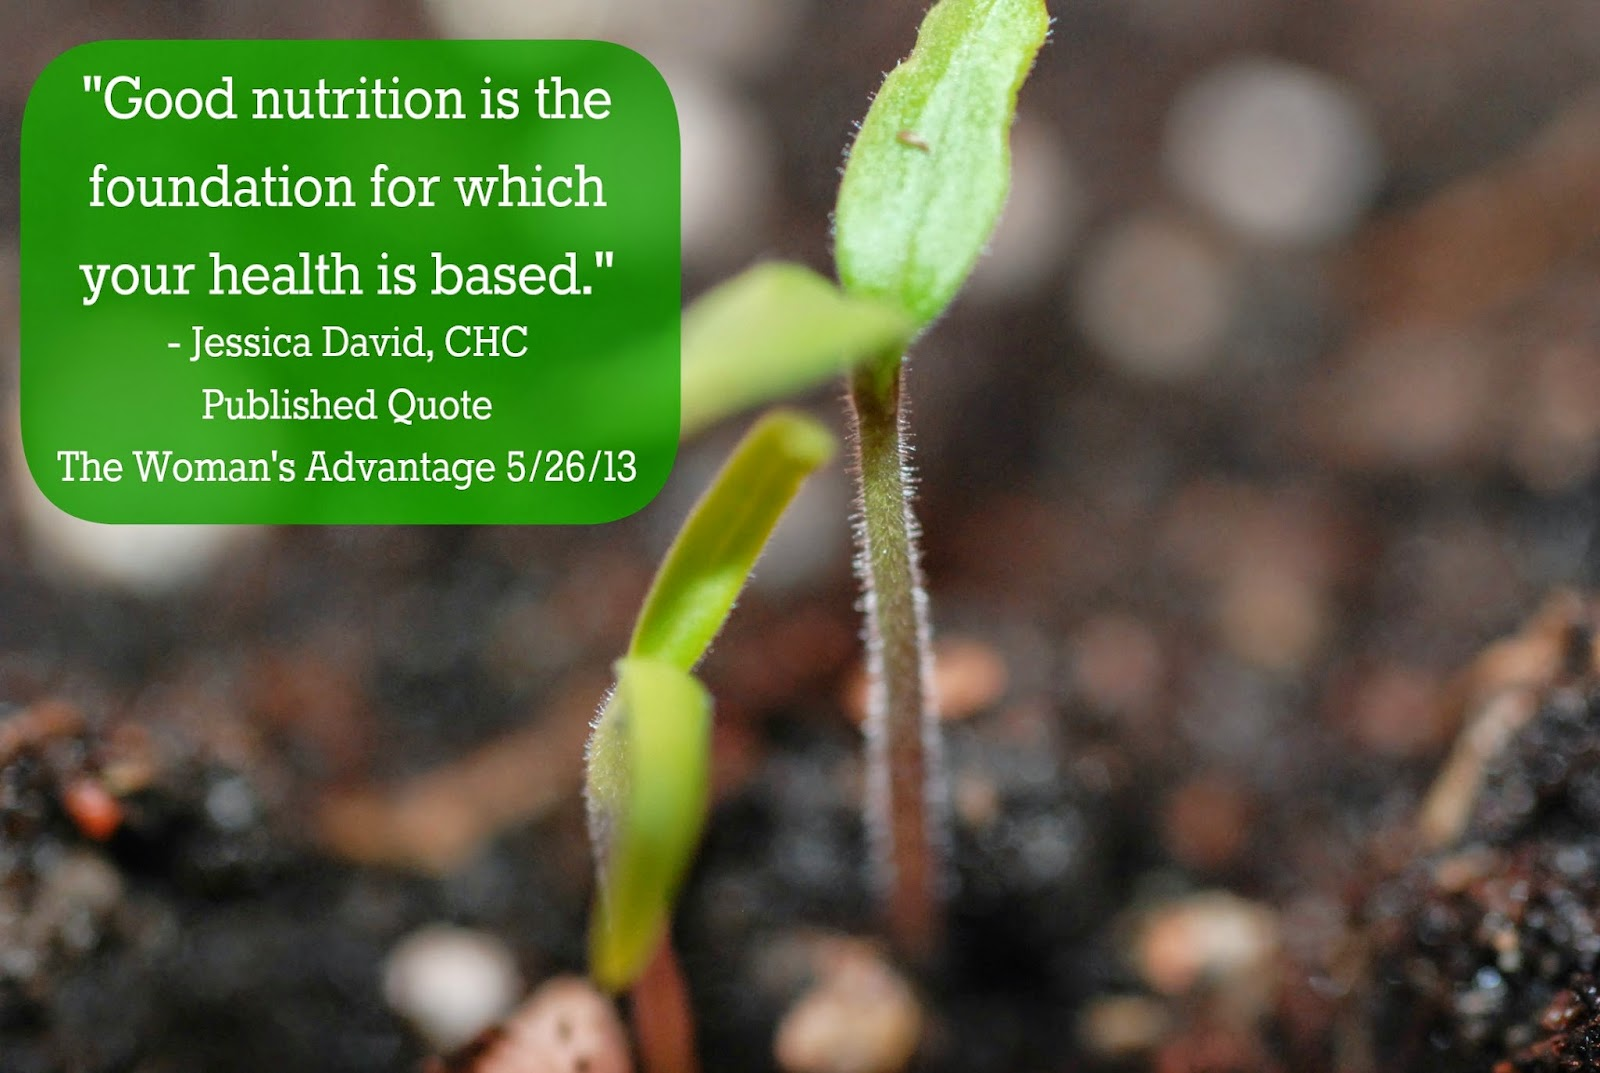 iCA | 2013 Published Quote - Foundation for Health